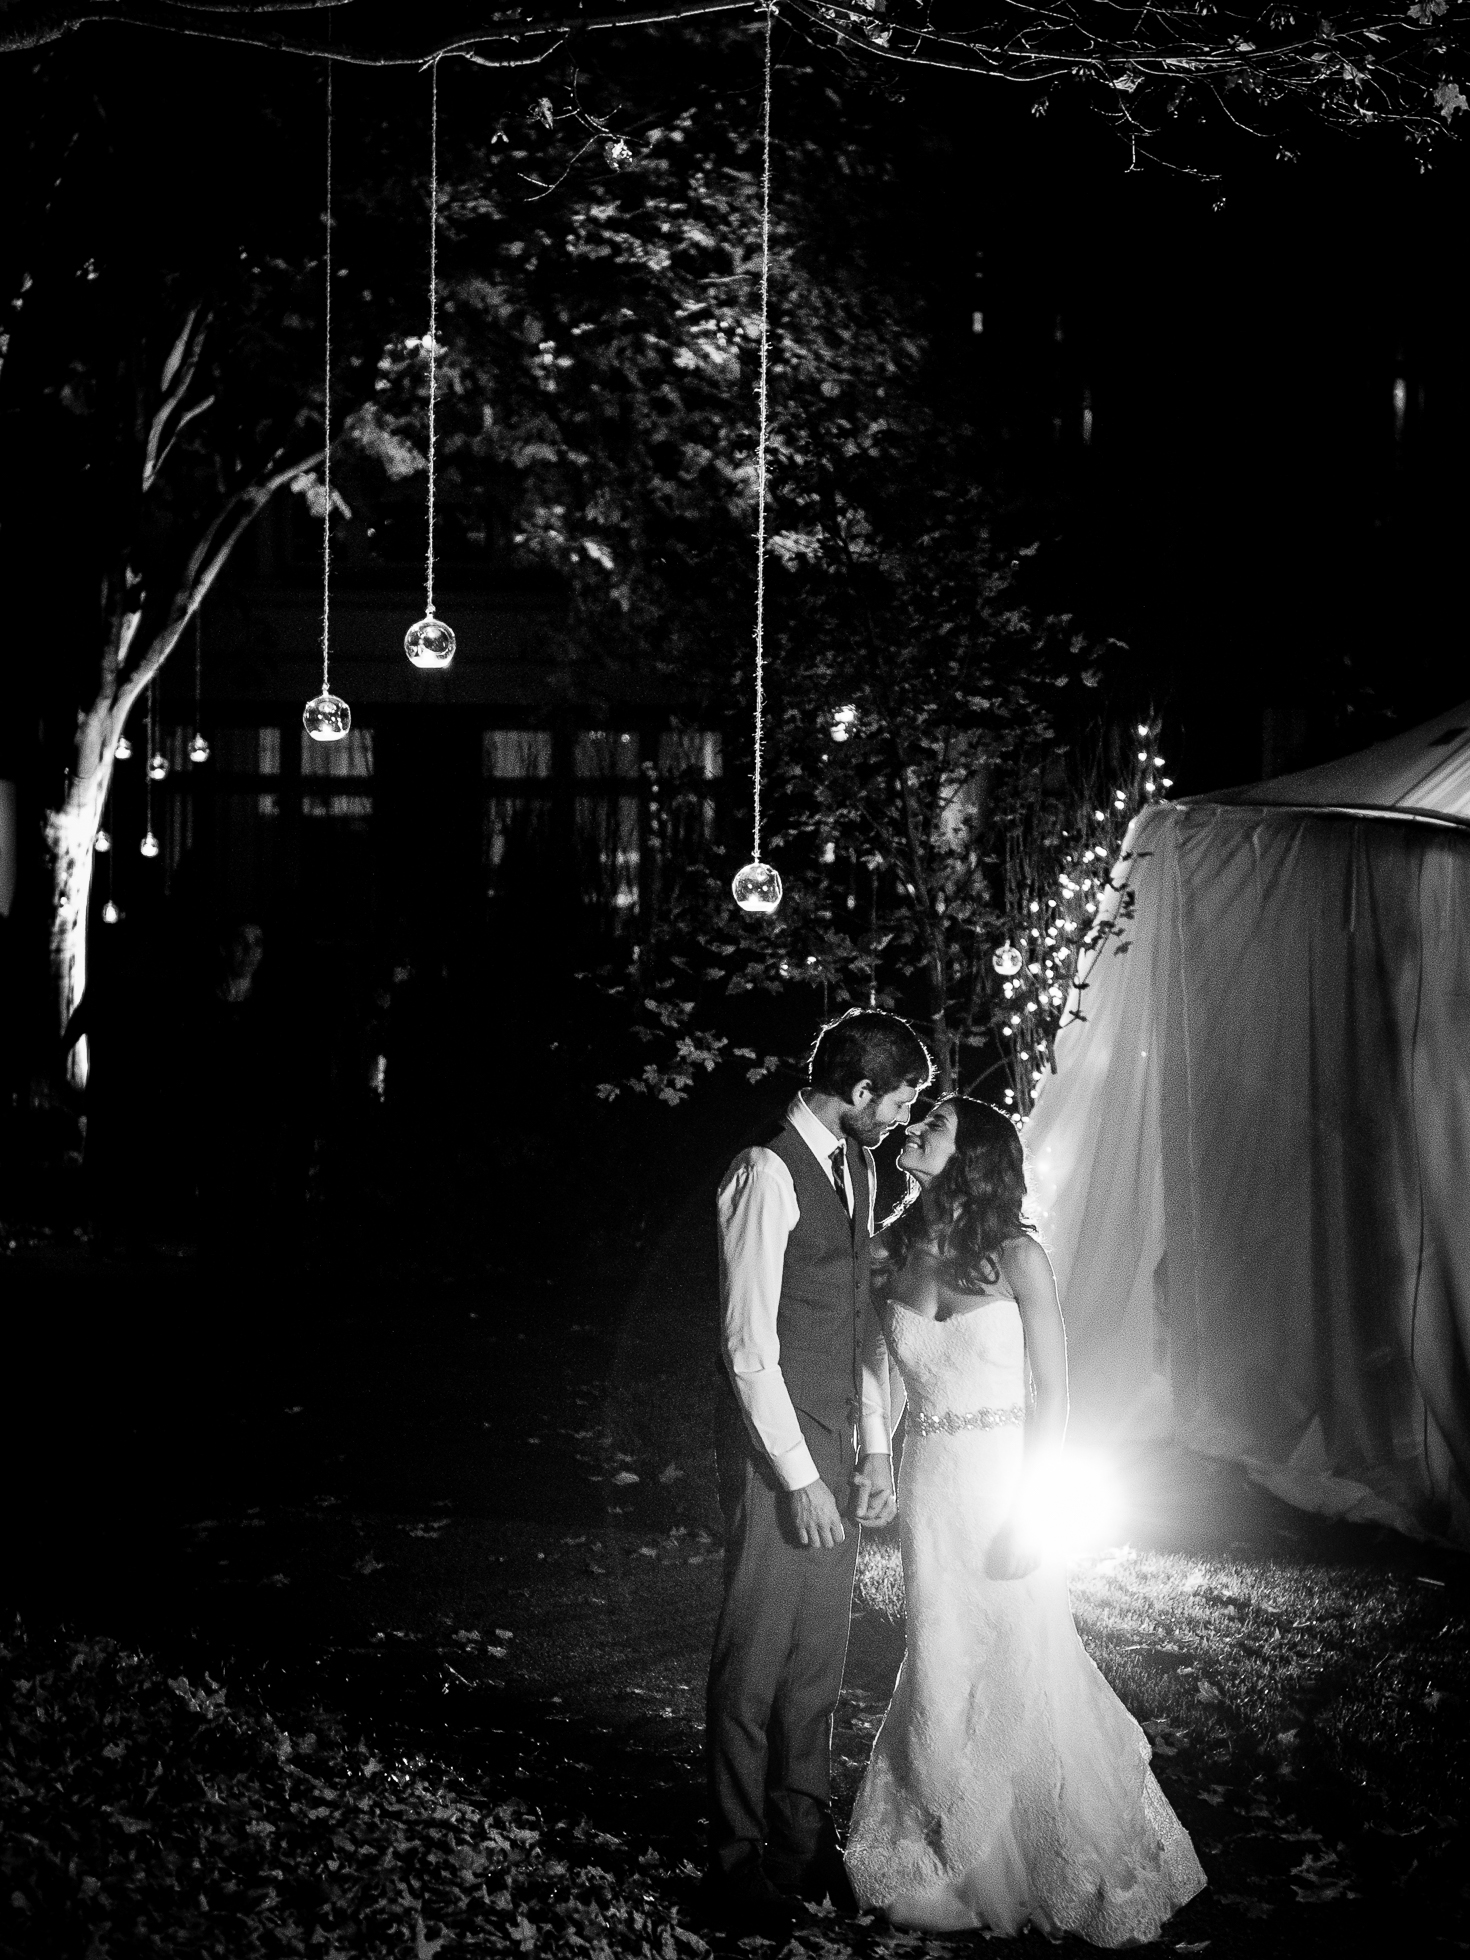 ethereal outdoor wedding portrait at night